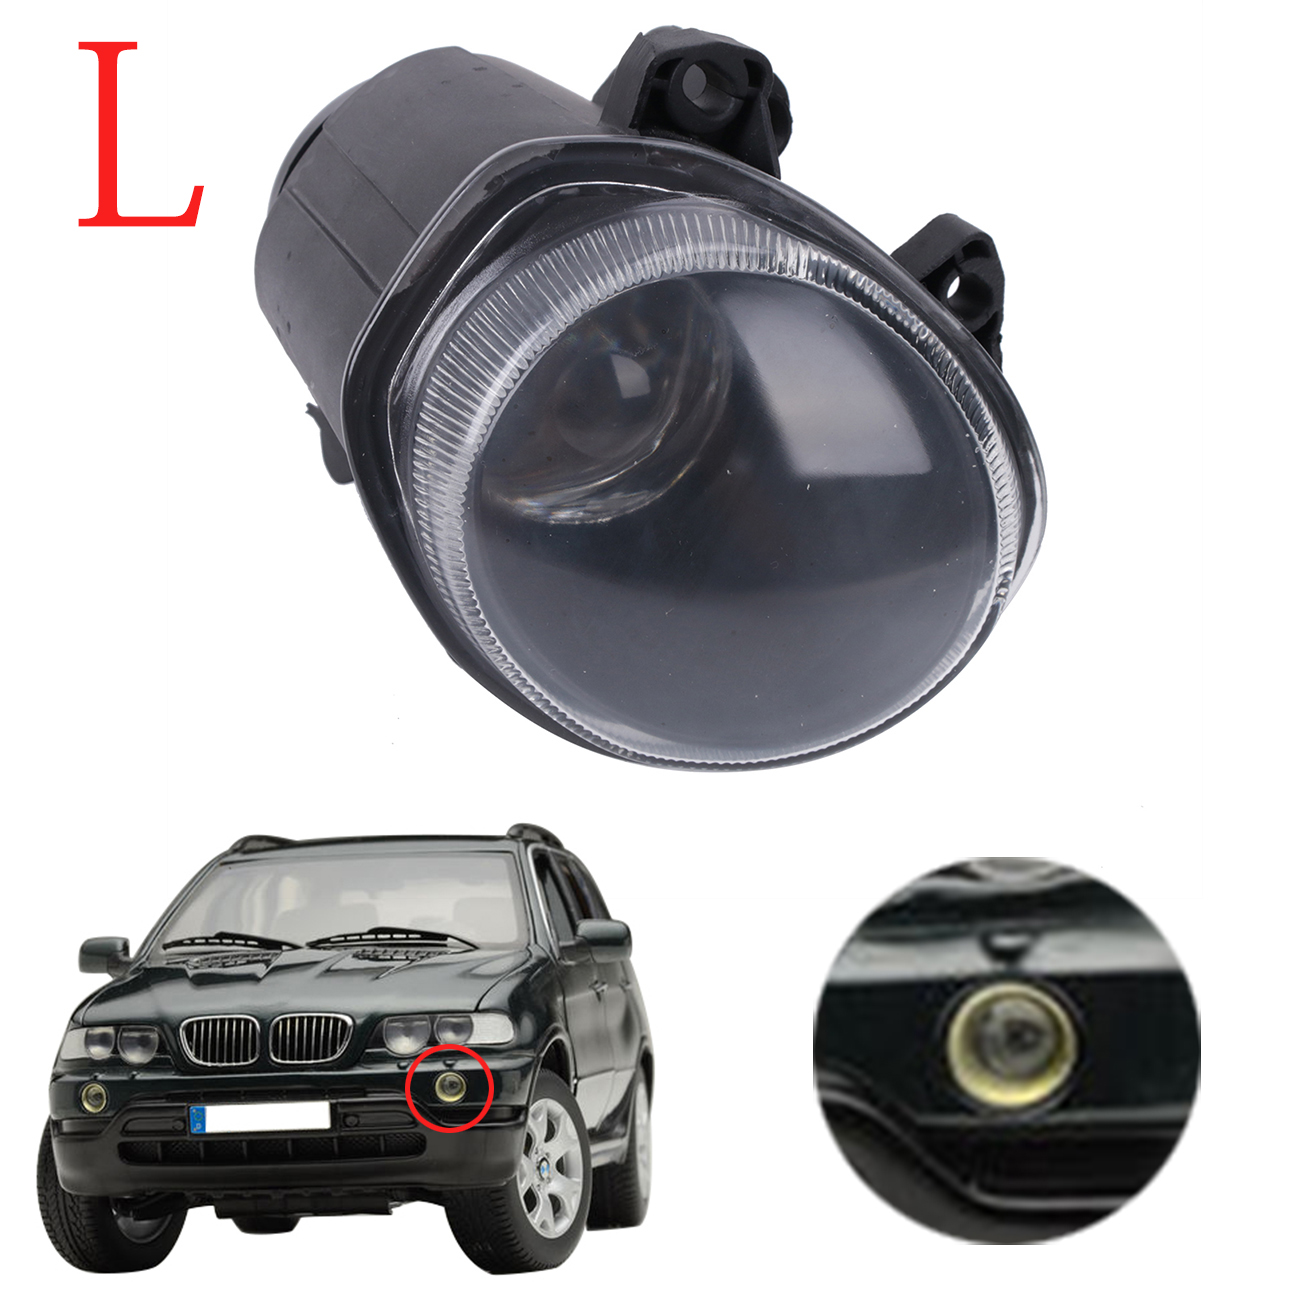 ФОТО OEM 63178409025 Left Front Fog Light Clear Driving Lamp Foglamp Cover For BMW X5 E53 2000 2001 2002 Auto Car Stling #W087-L